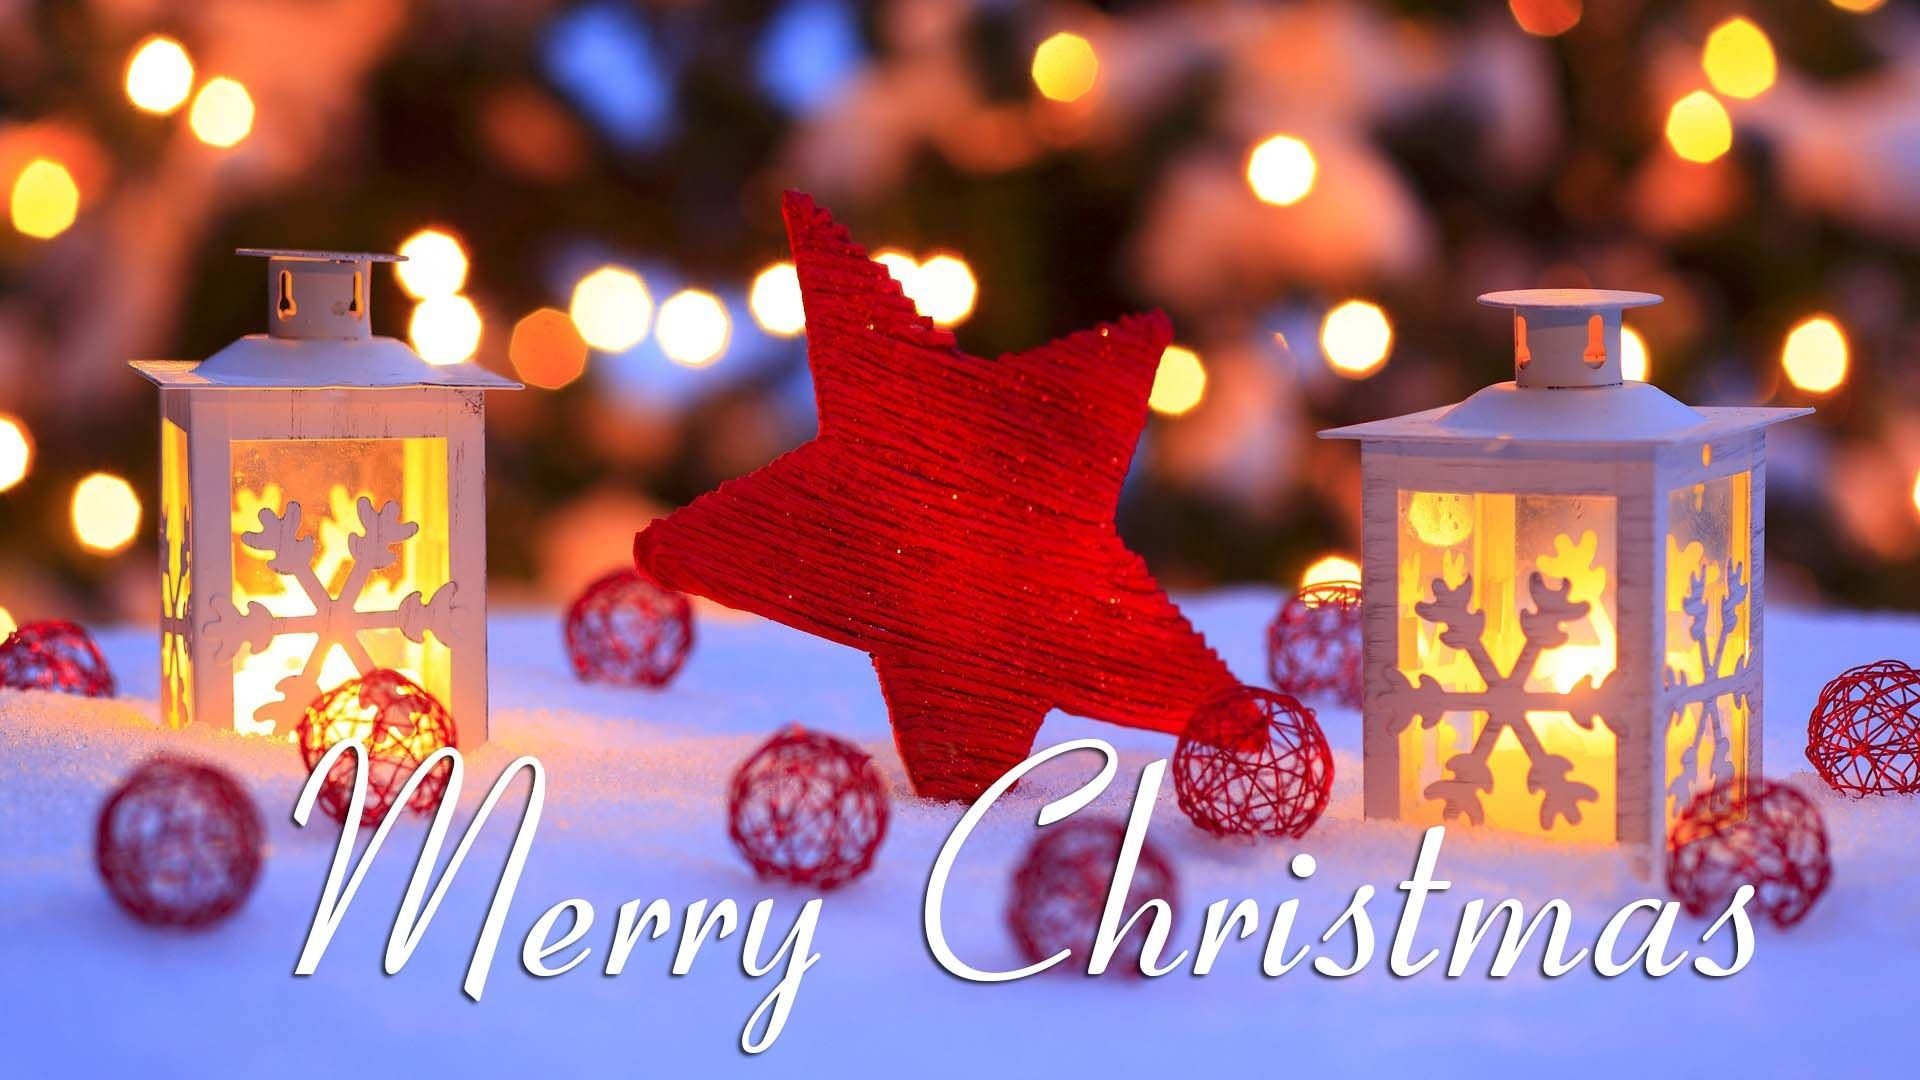 1920x1080 Merry Christmas Wallpaper 2016 (04)